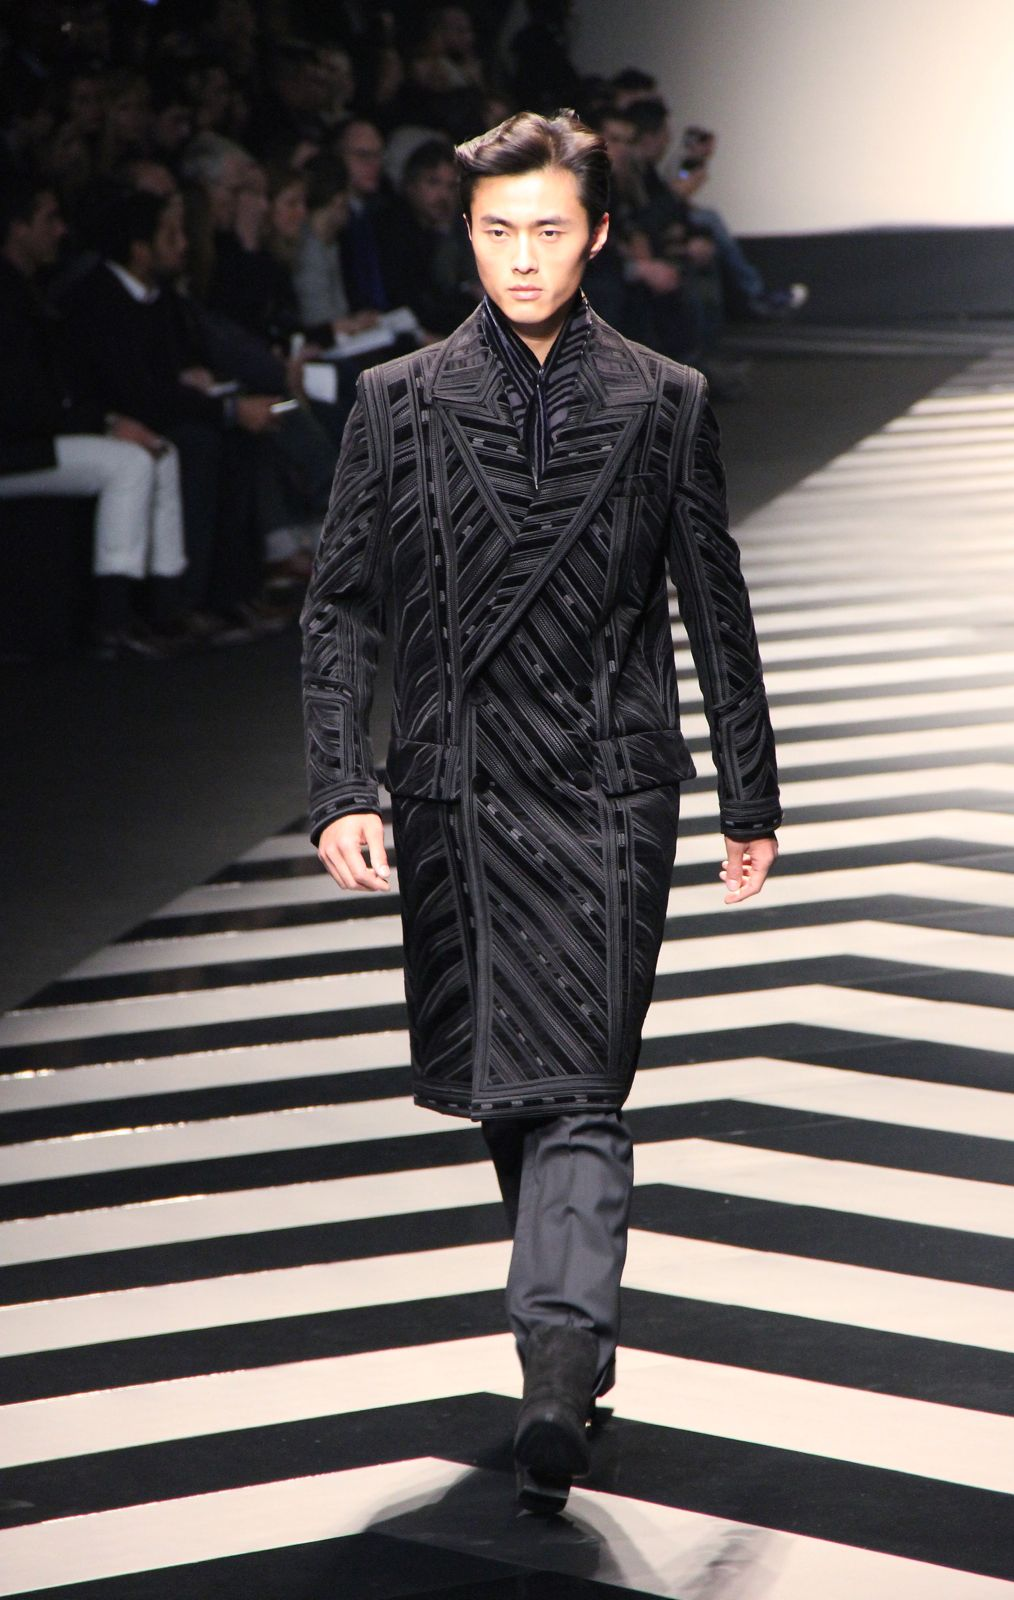 Roberto Cavalli Fall Winter 2012-13 Men's Collection